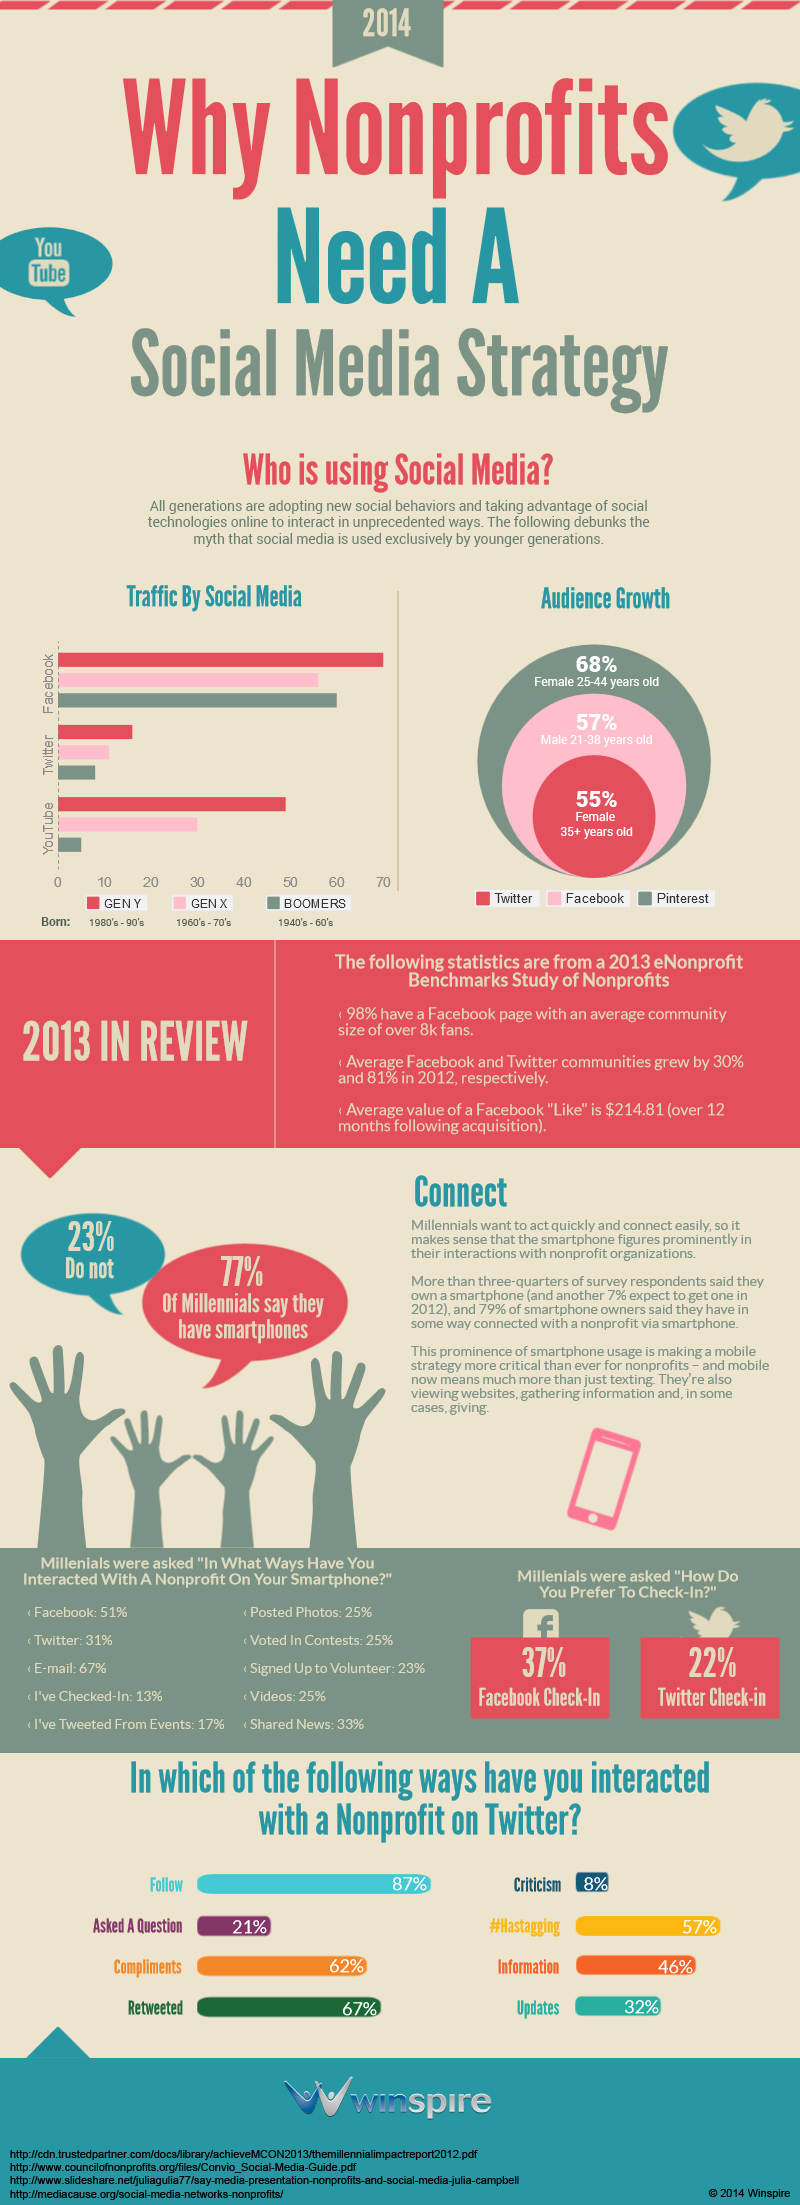 Why Nonprofits Need A Social Media Strategy [INFOGRAPHIC]